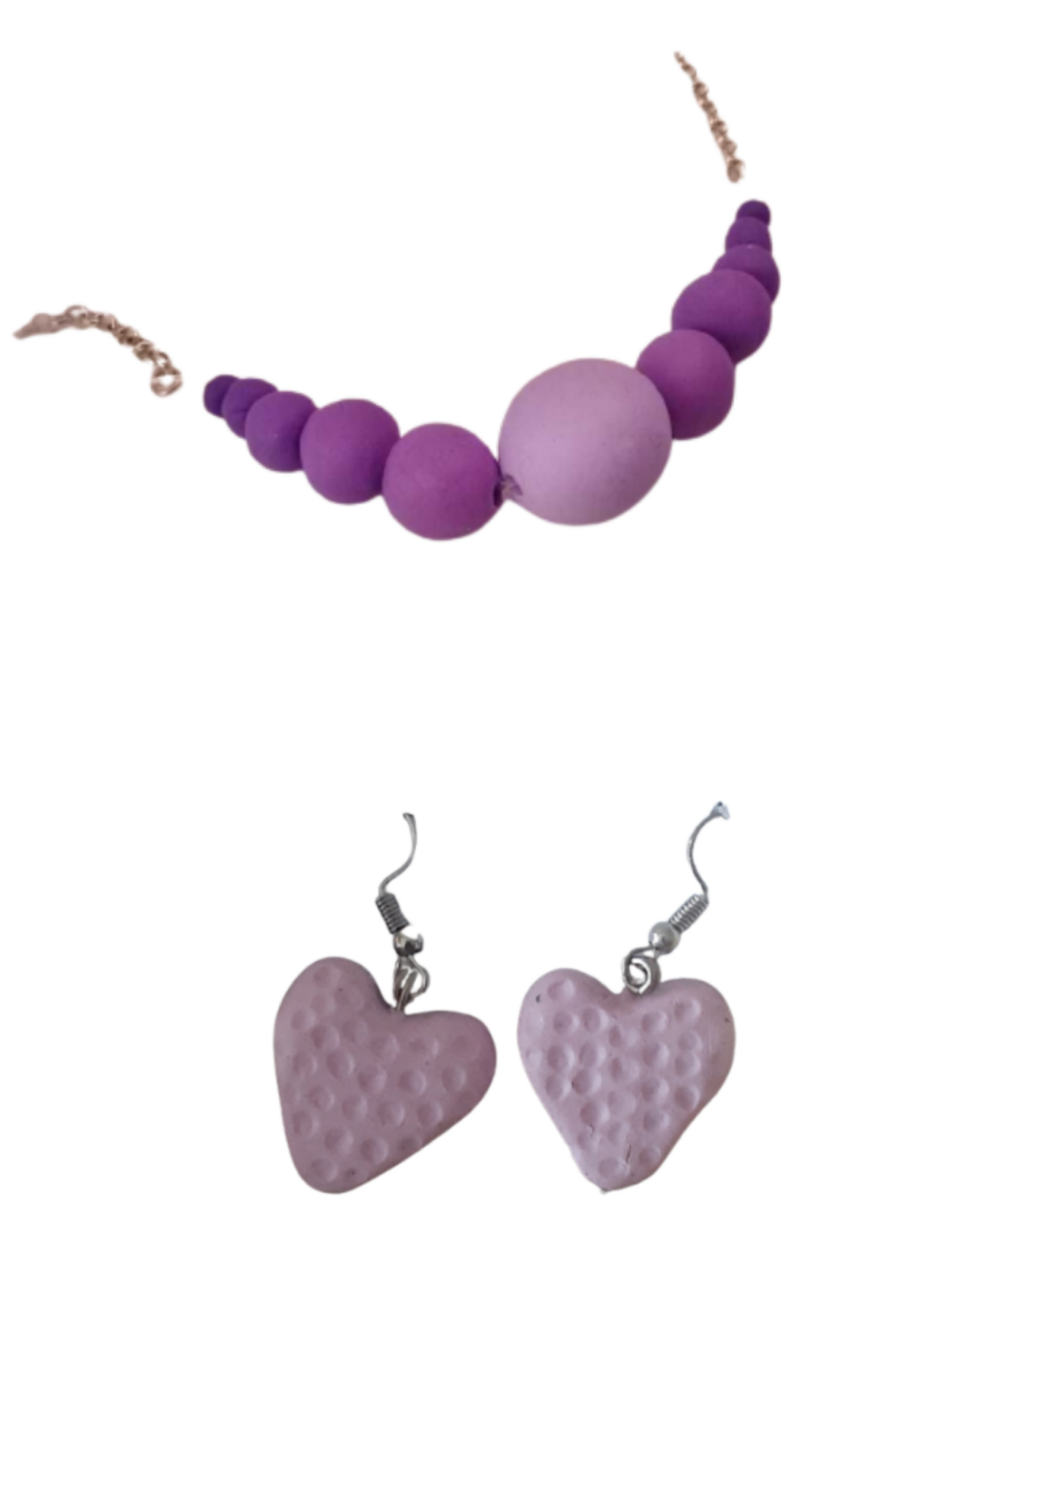 Necklace and earrings set pink